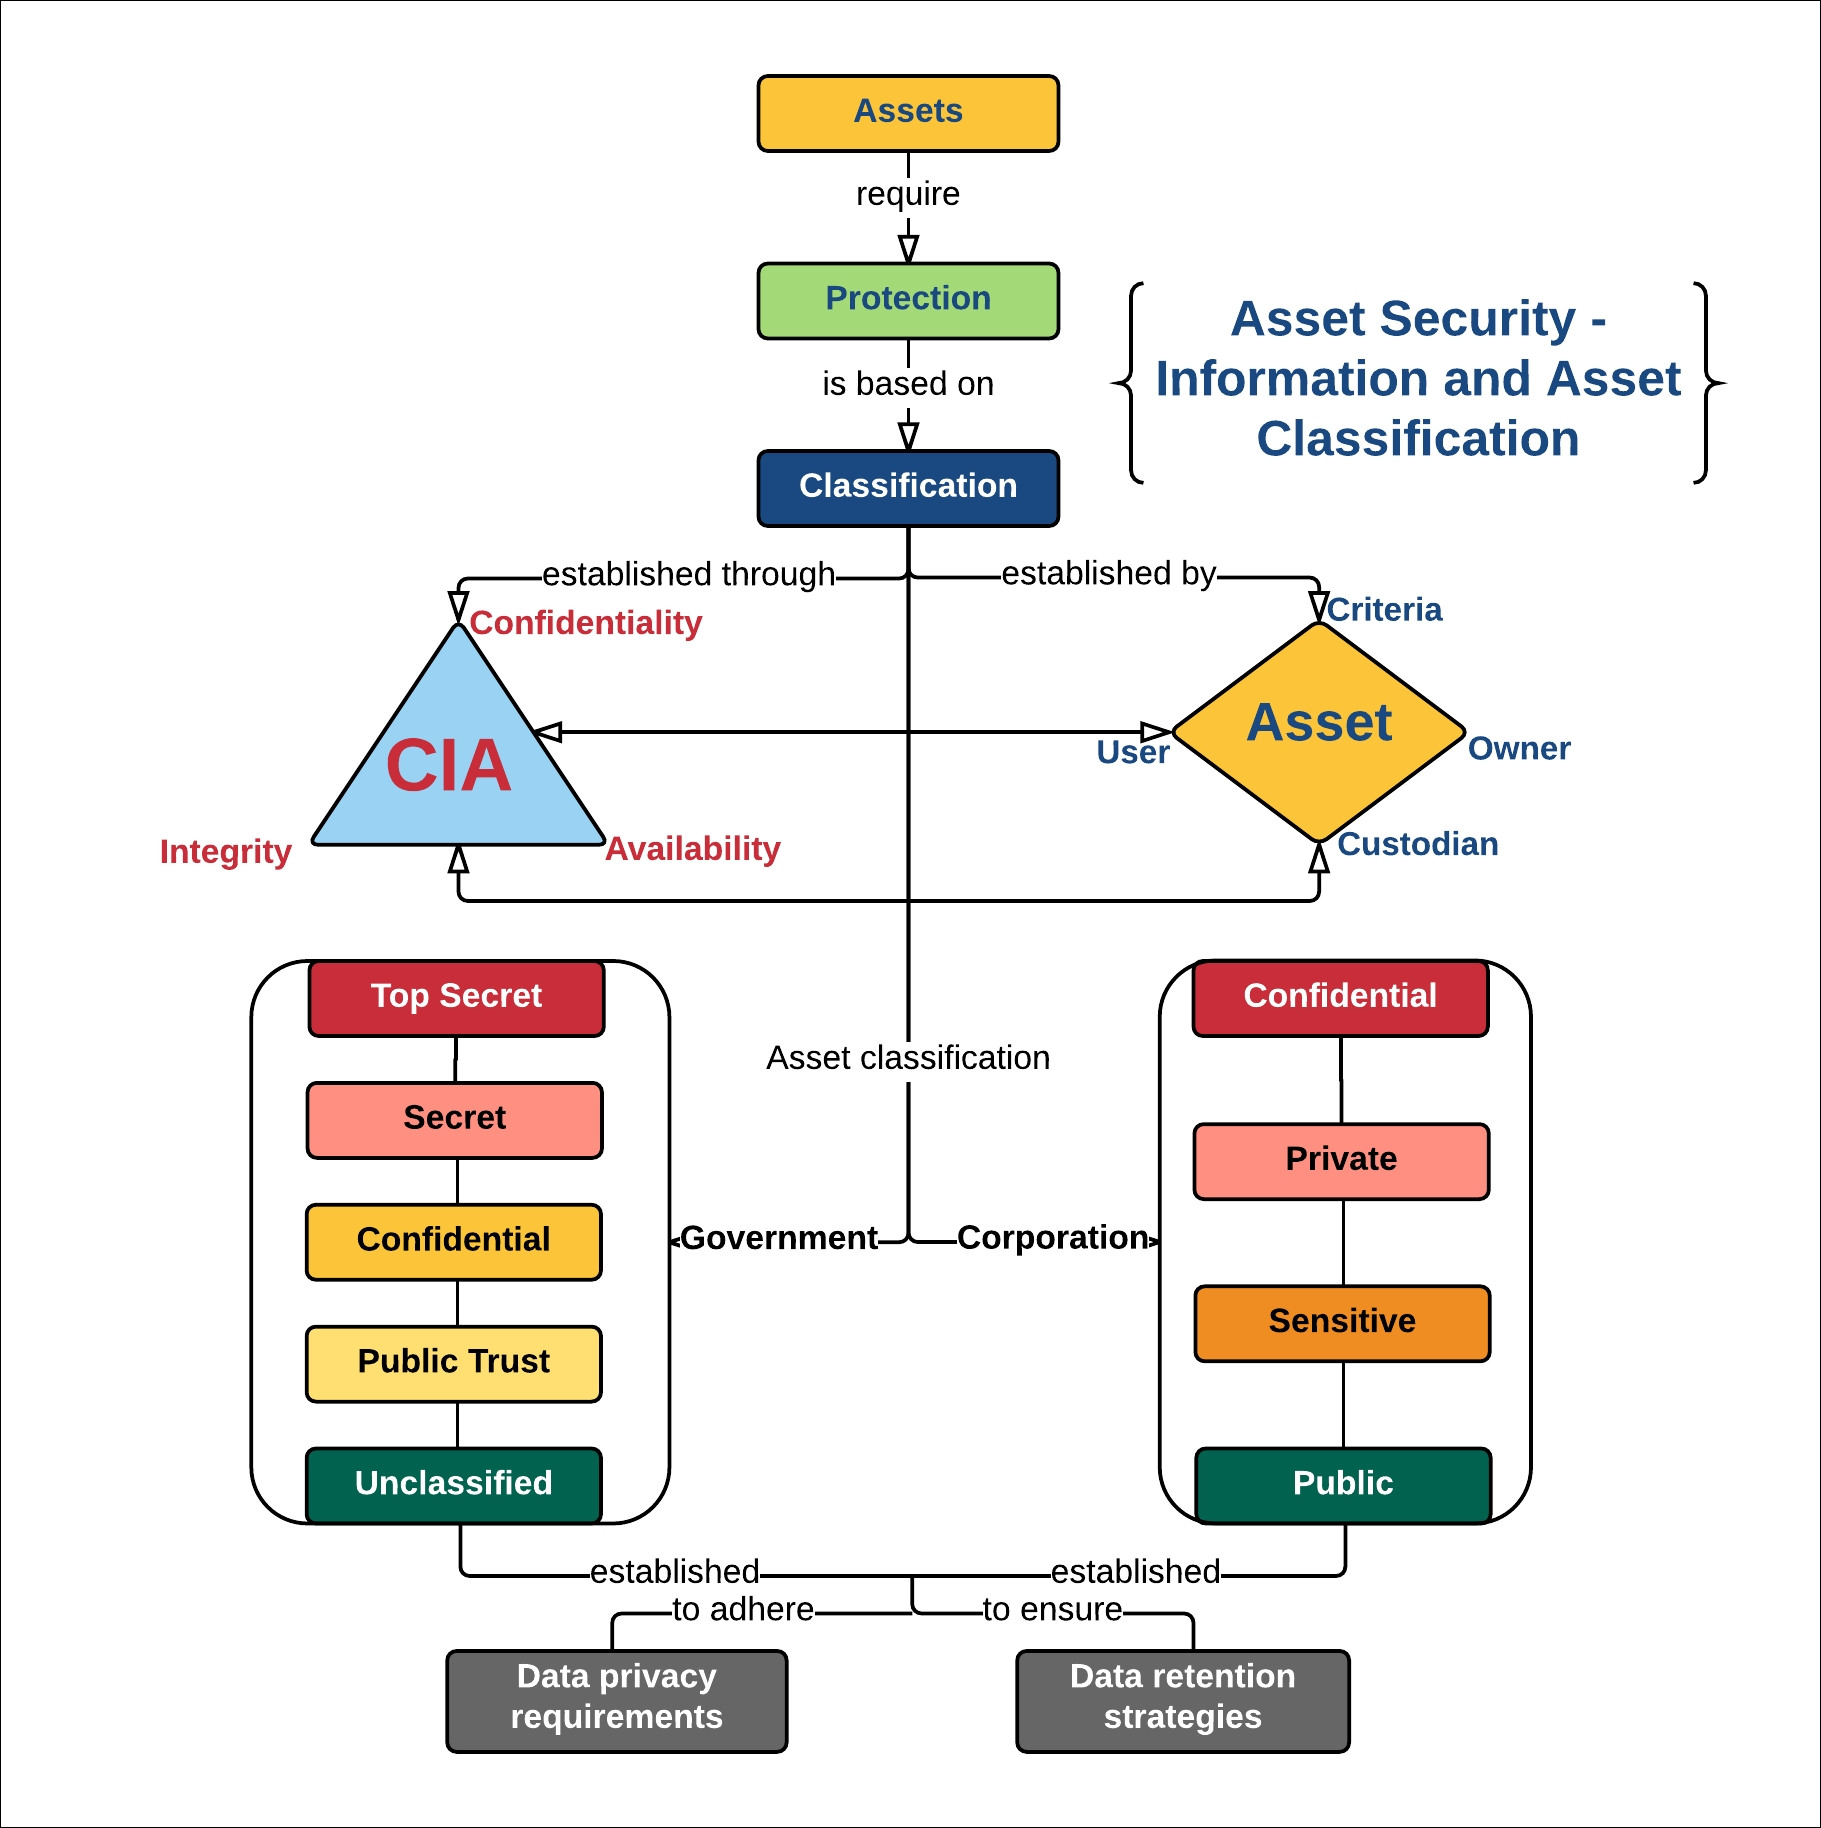 Overview Of Asset Security